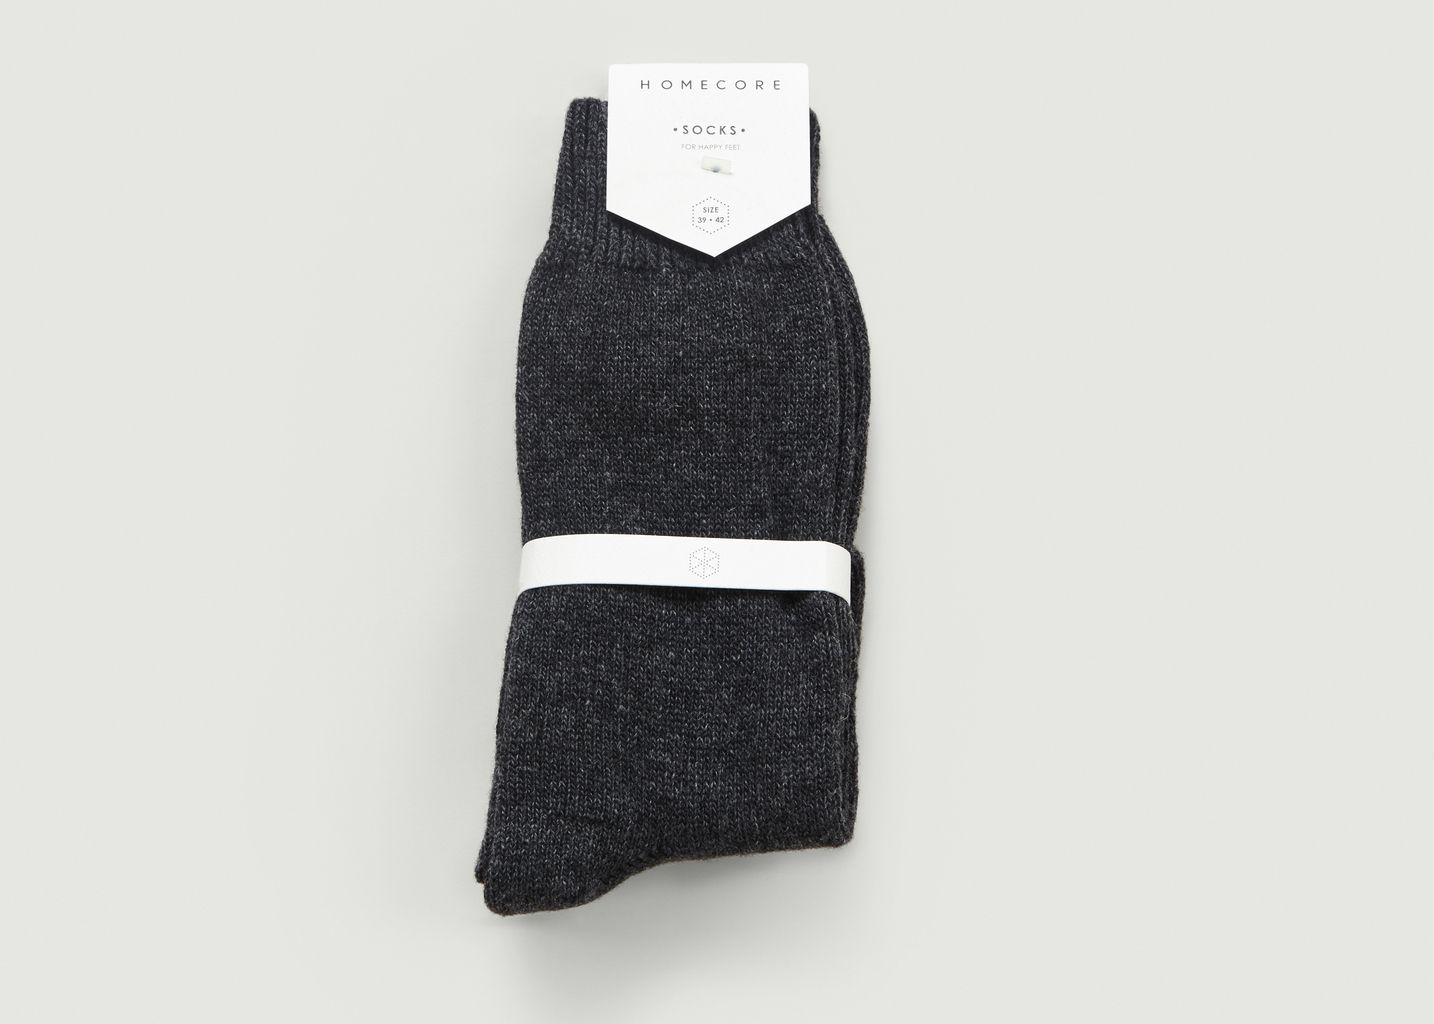 Chaussettes Unies - Homecore